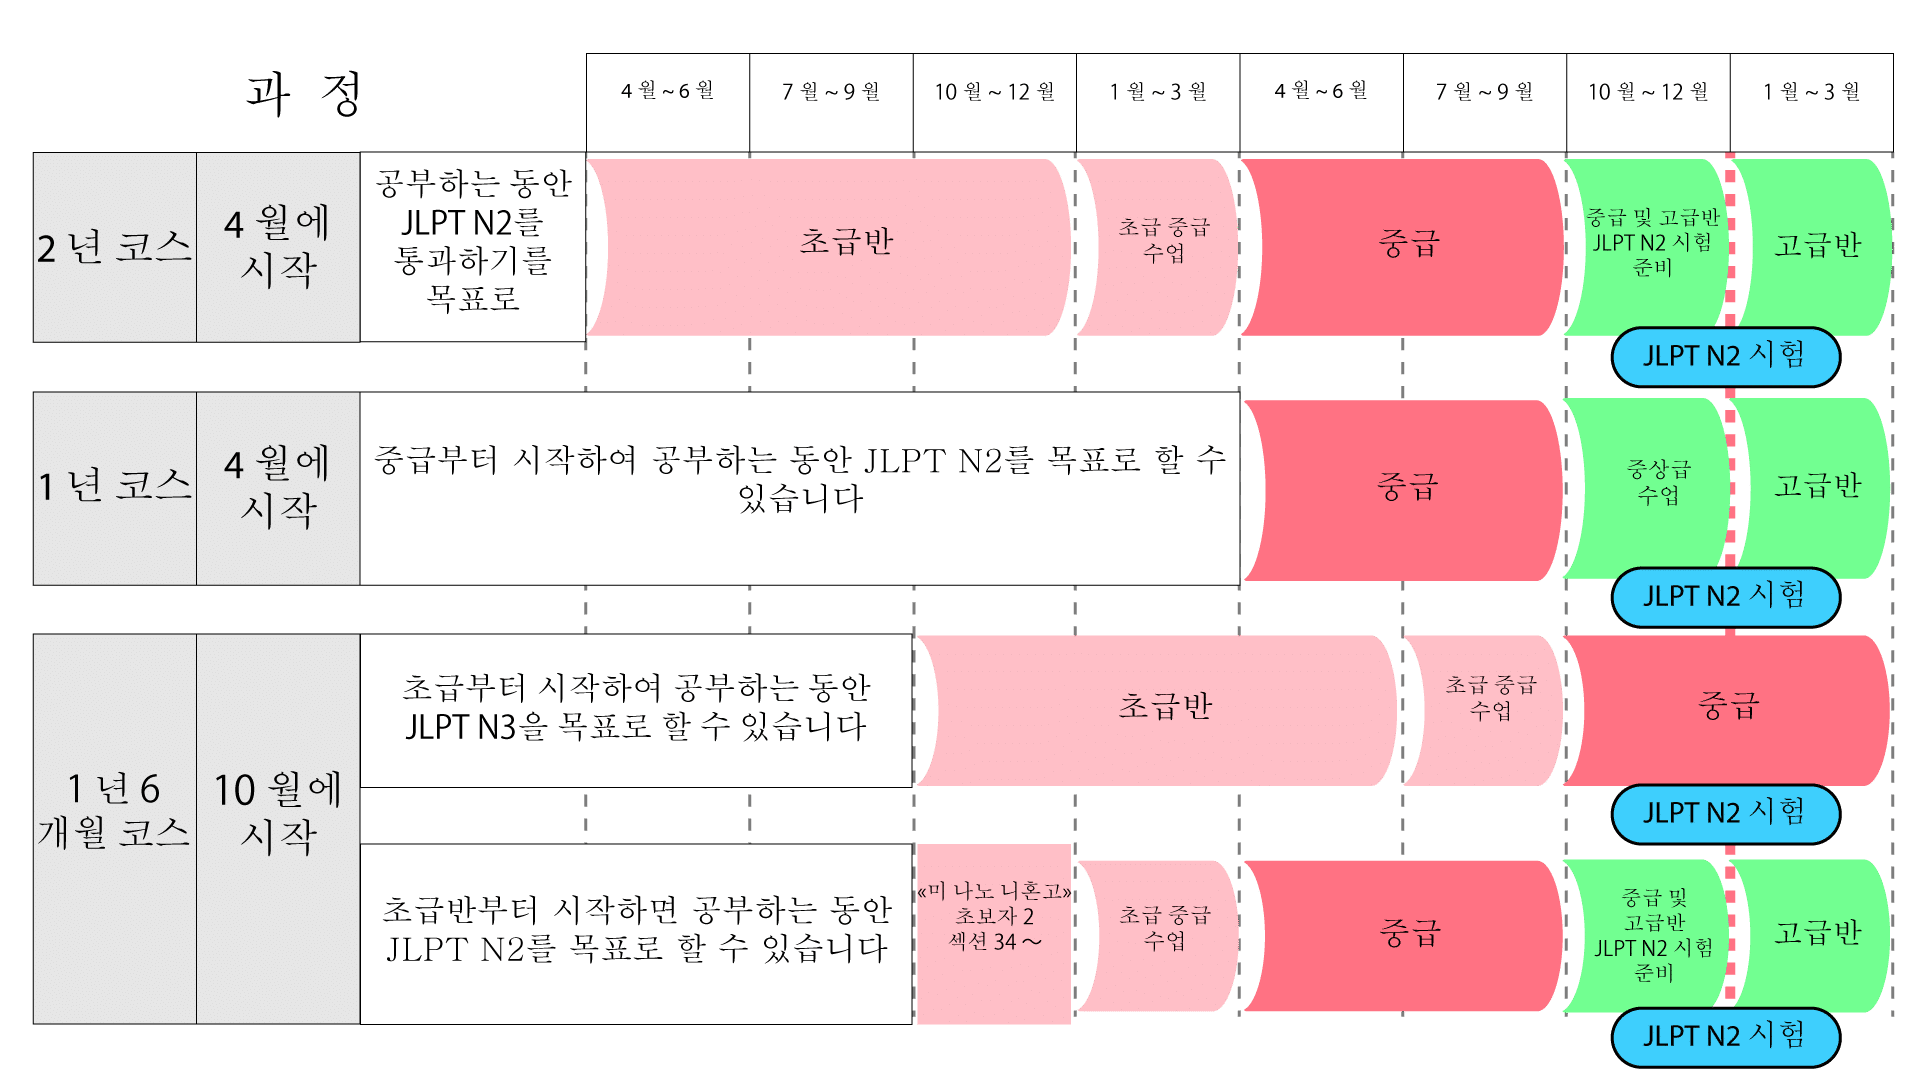 Long Course and Short Course curriculum in Korean